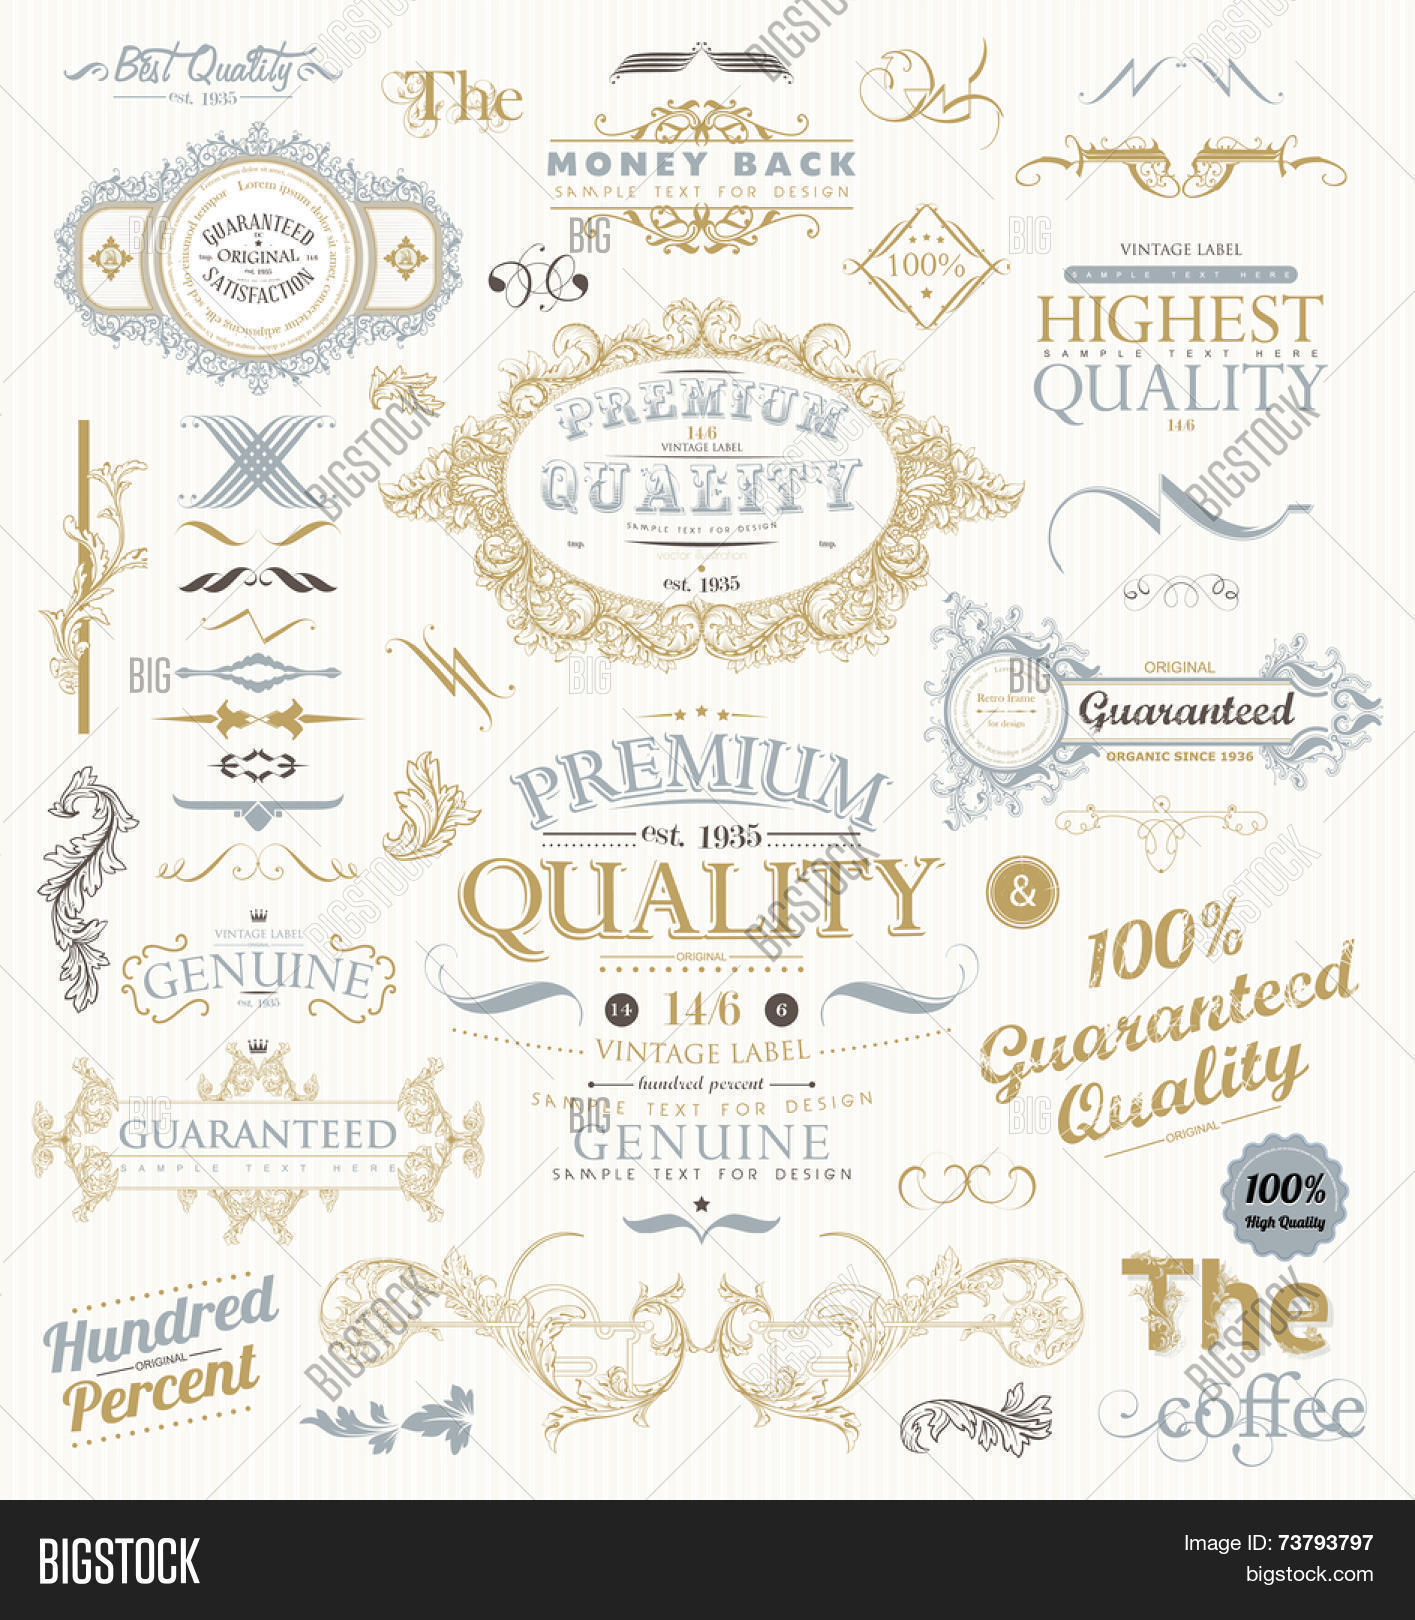 Vintage style ornaments - Vintage Vector Design Elements Collection Retro Style Typographic Labels Frames Tags Stamps